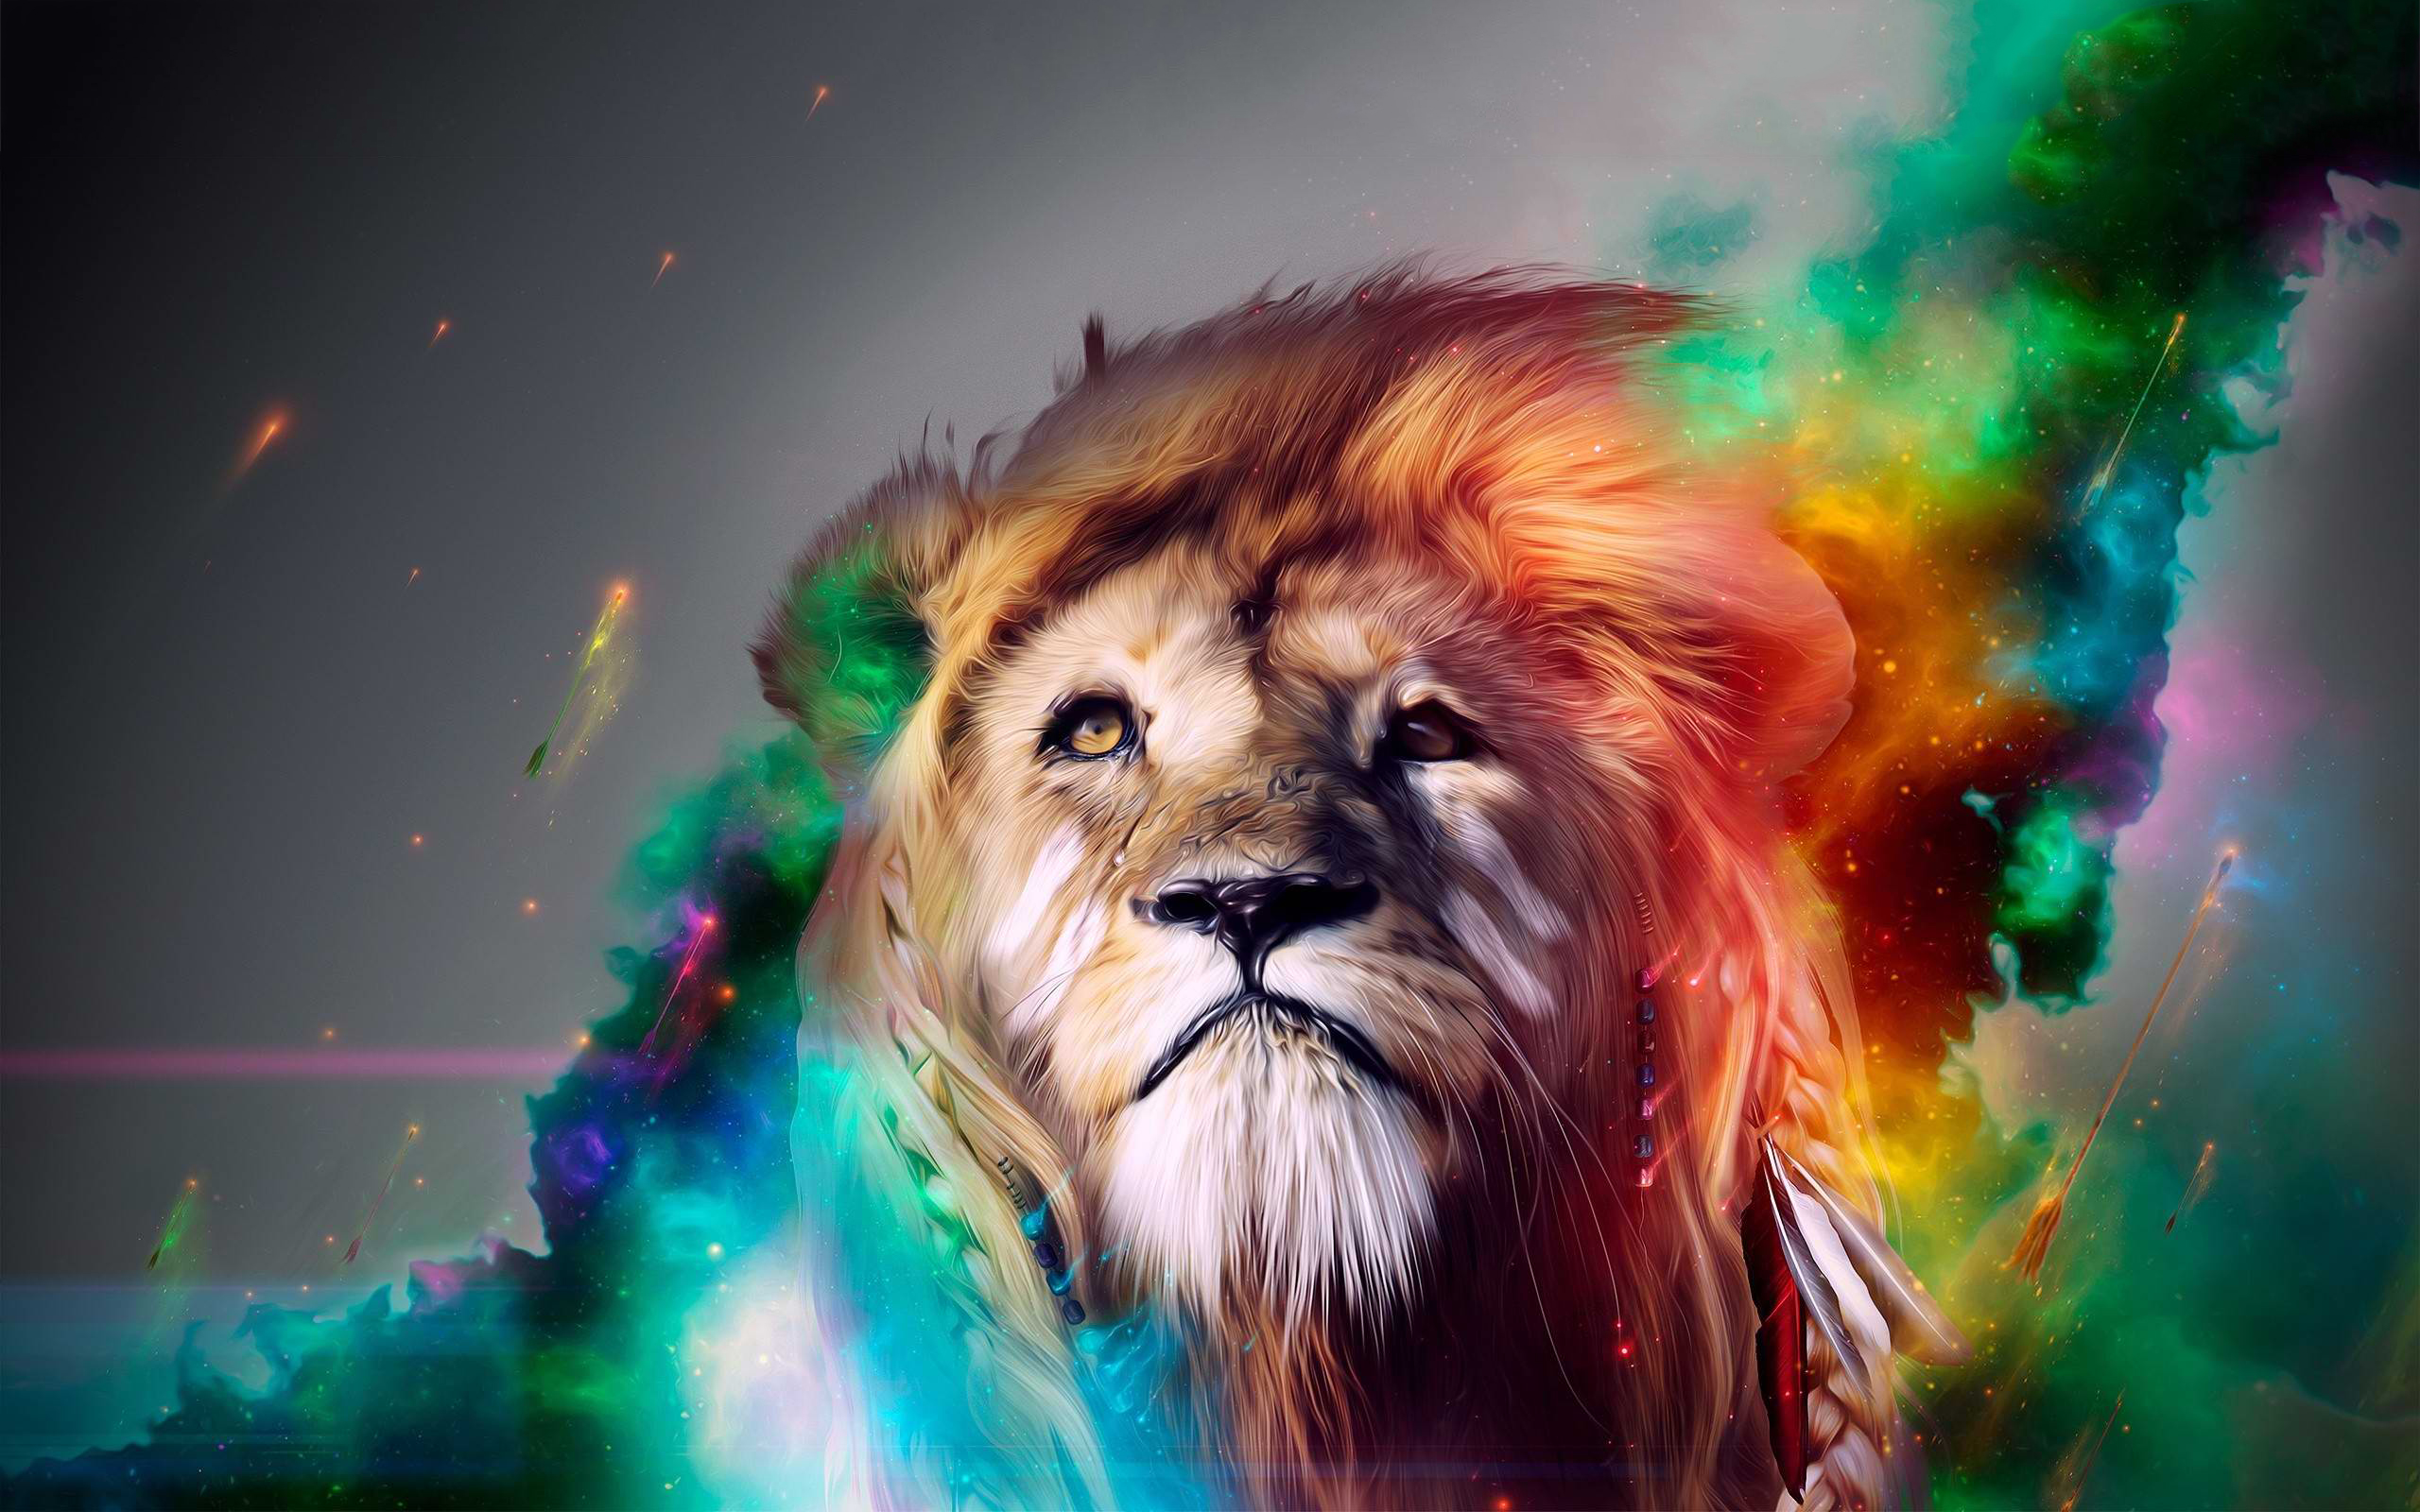 Lion rainbow art